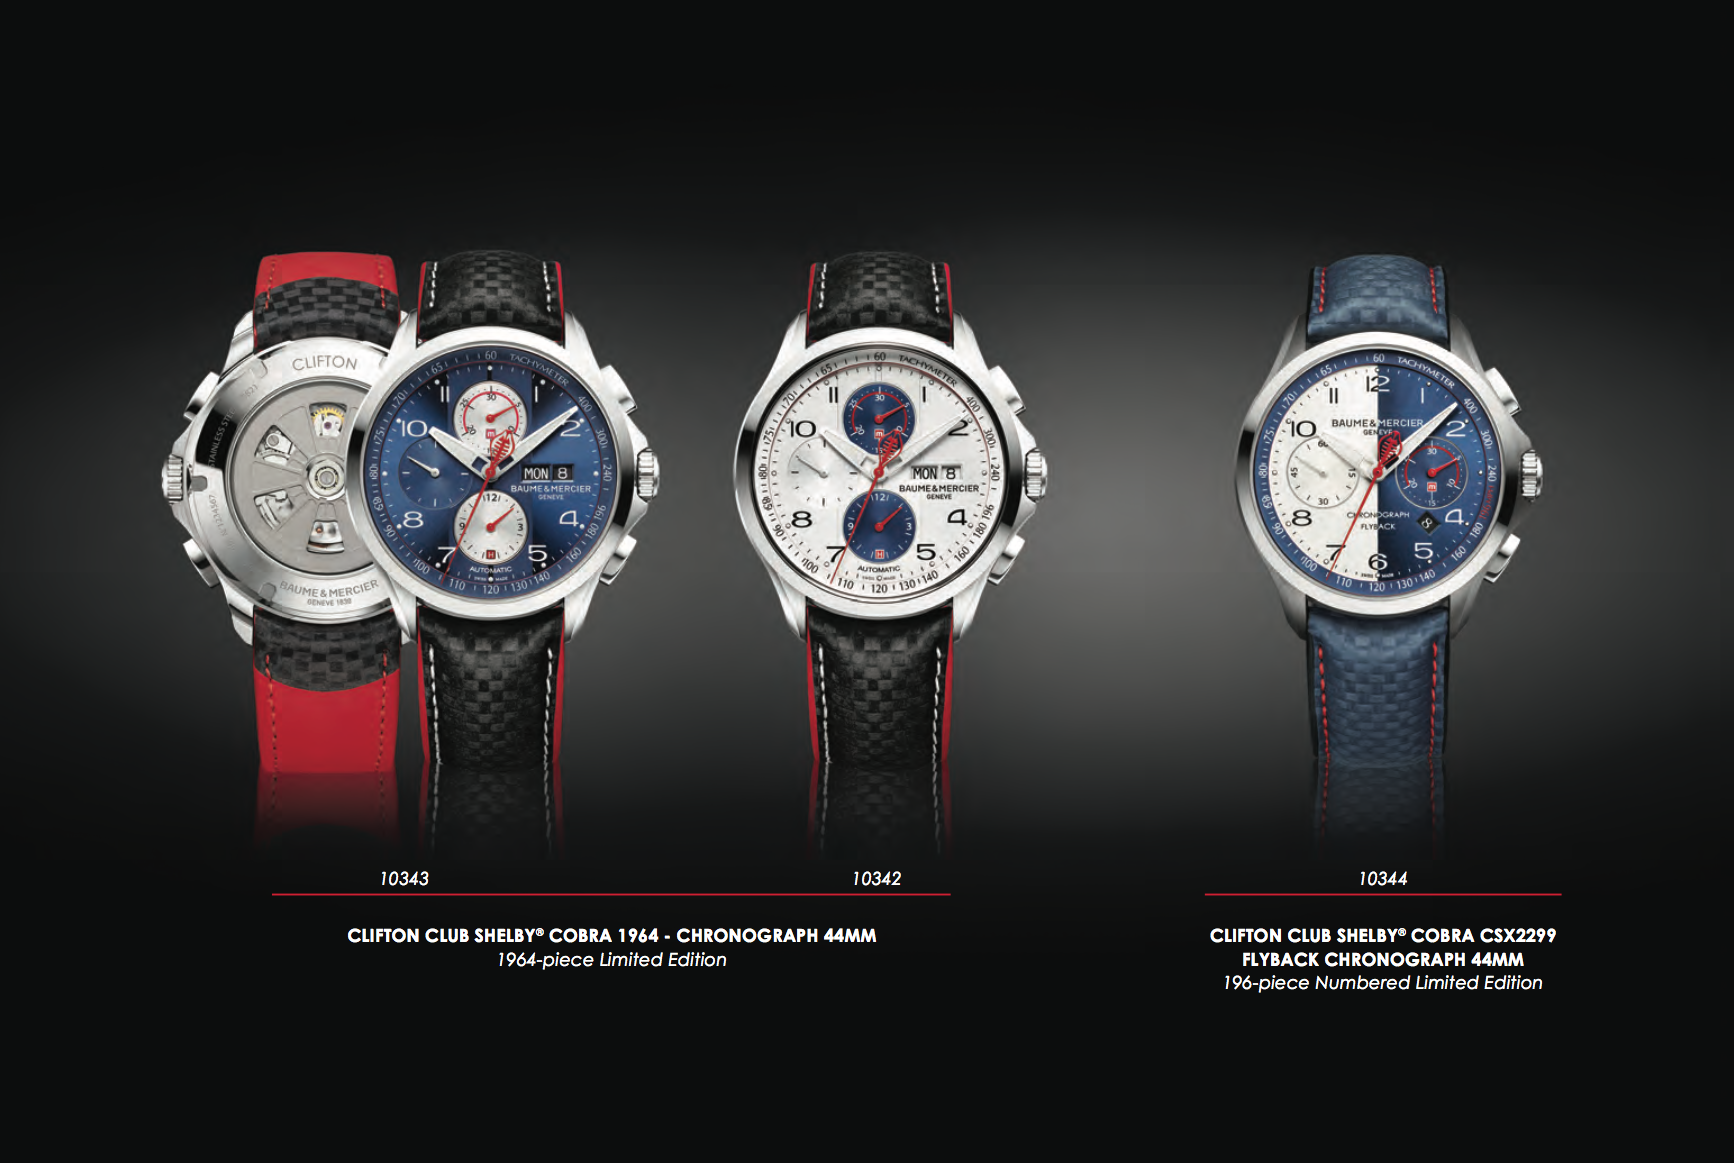 Baume & Mercier Clifton Club Shelby Cobra - the three limited editions at a glance